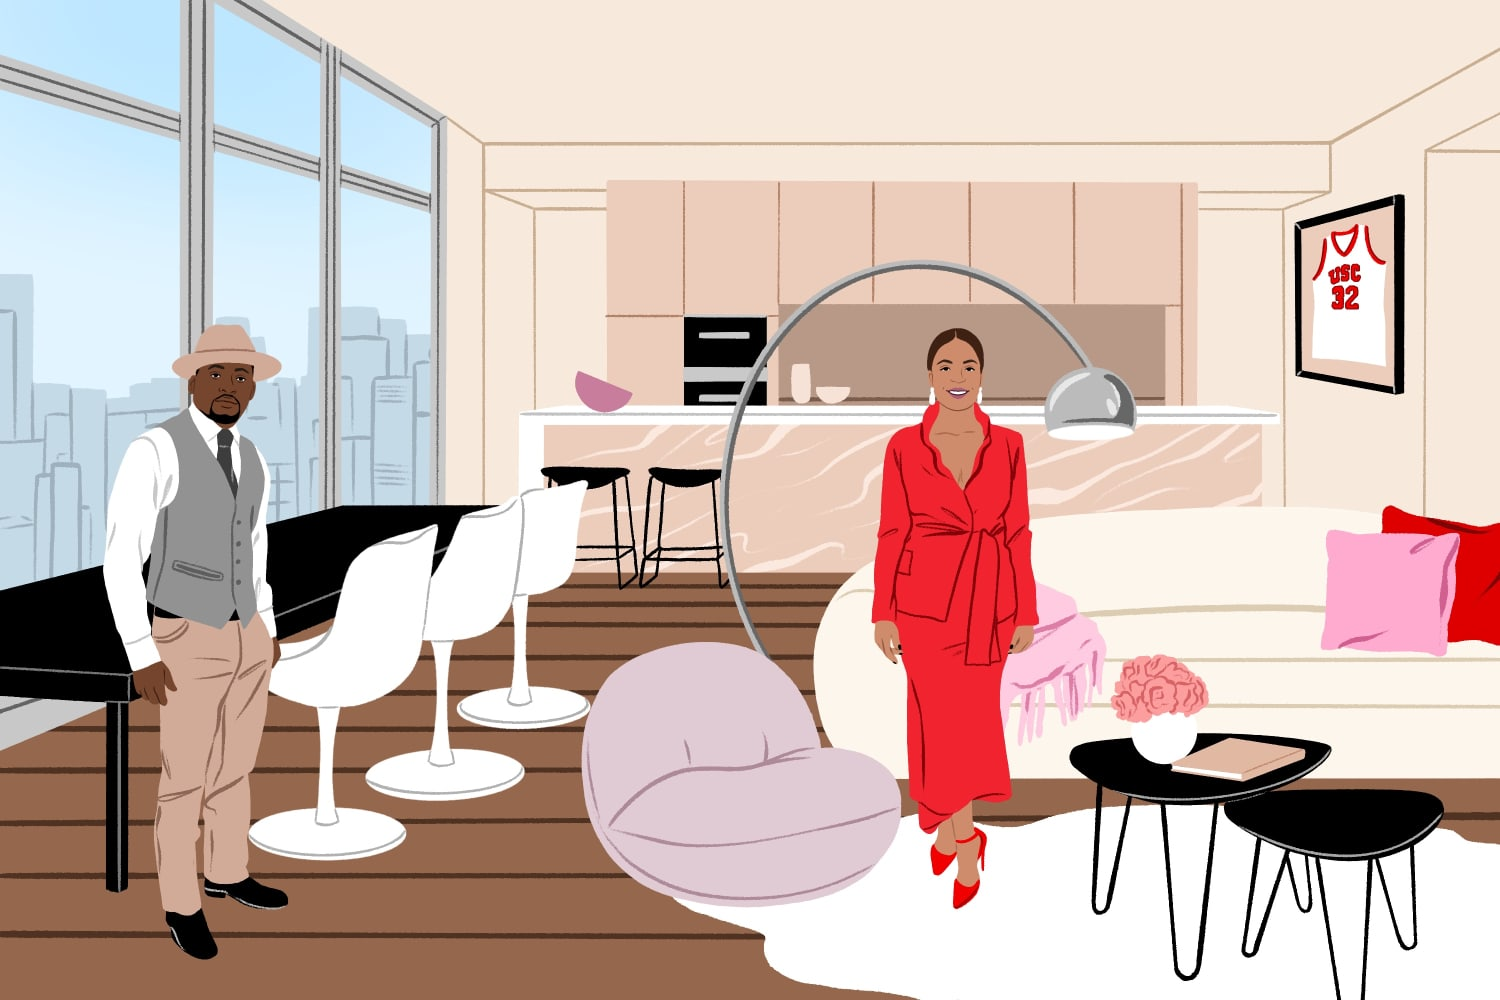 How RomCom Couples Would Decorate if They Lived in Studio Apartments